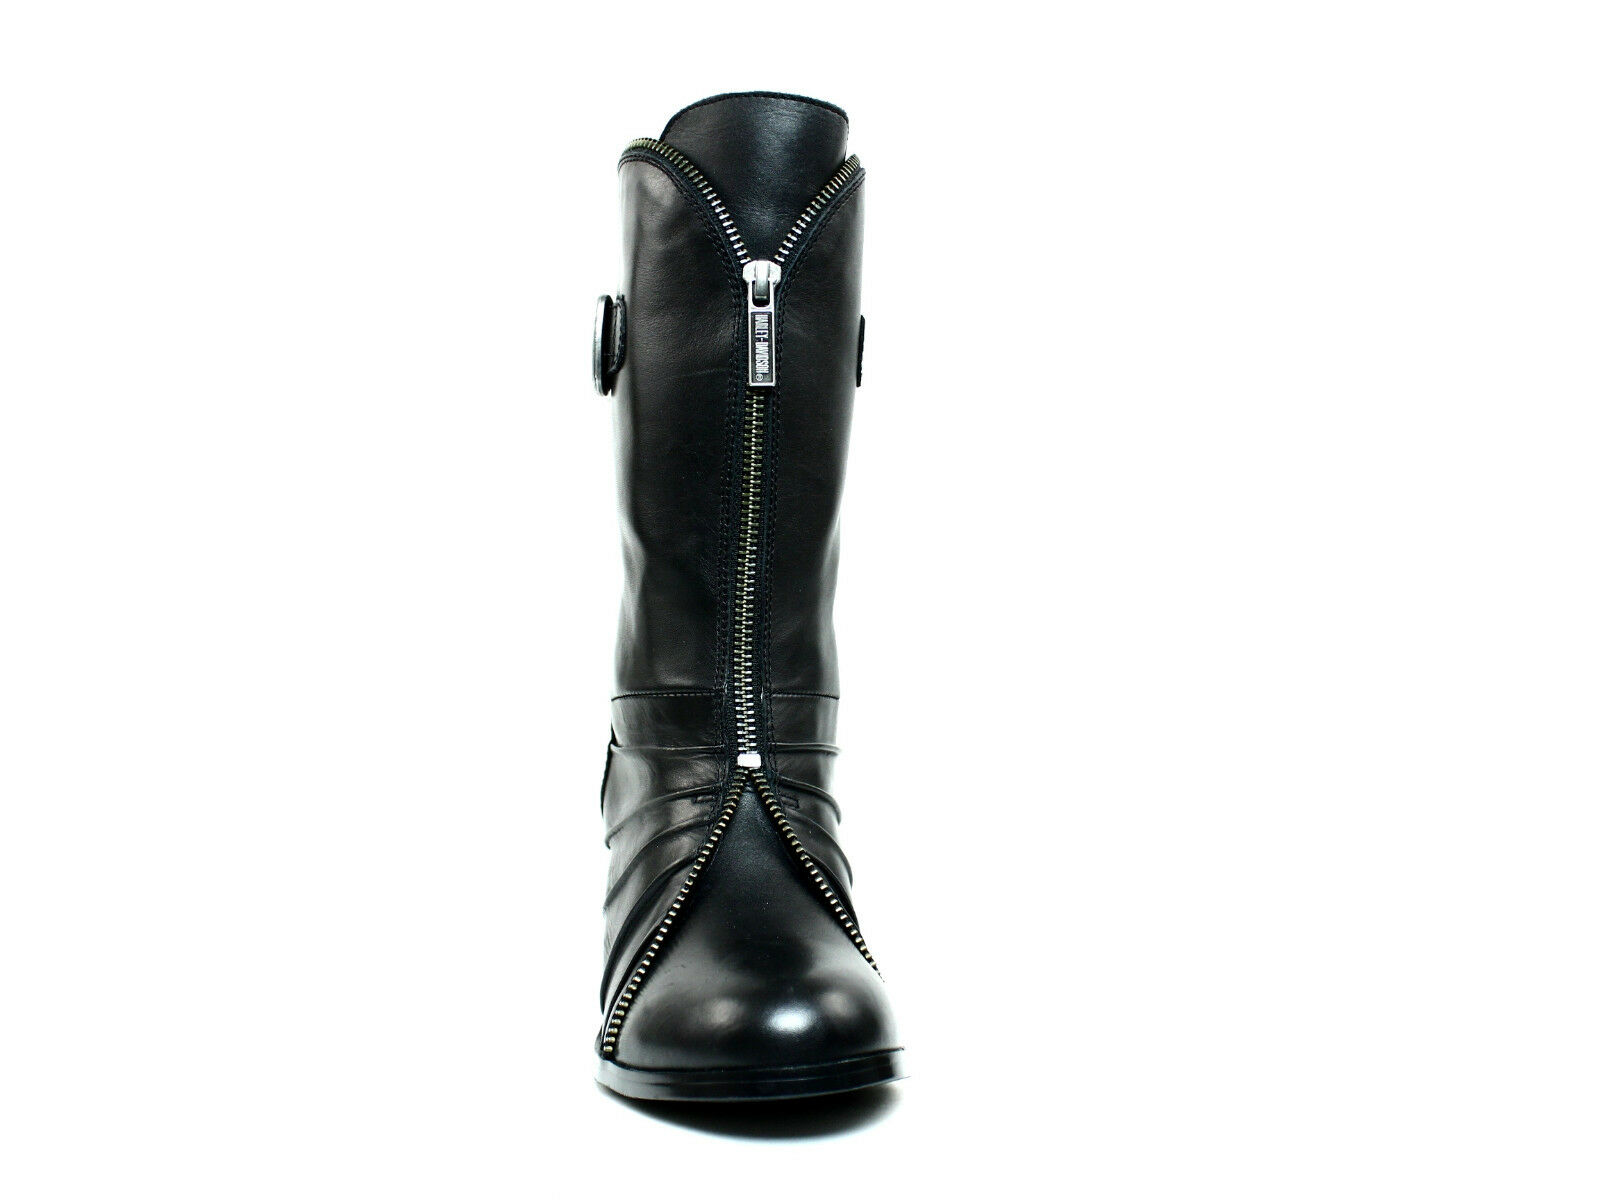 Harley Davidson Womens  Motorcycle Fashion Mid-Calf  Zipper    Black Leather  Boot 6a8891